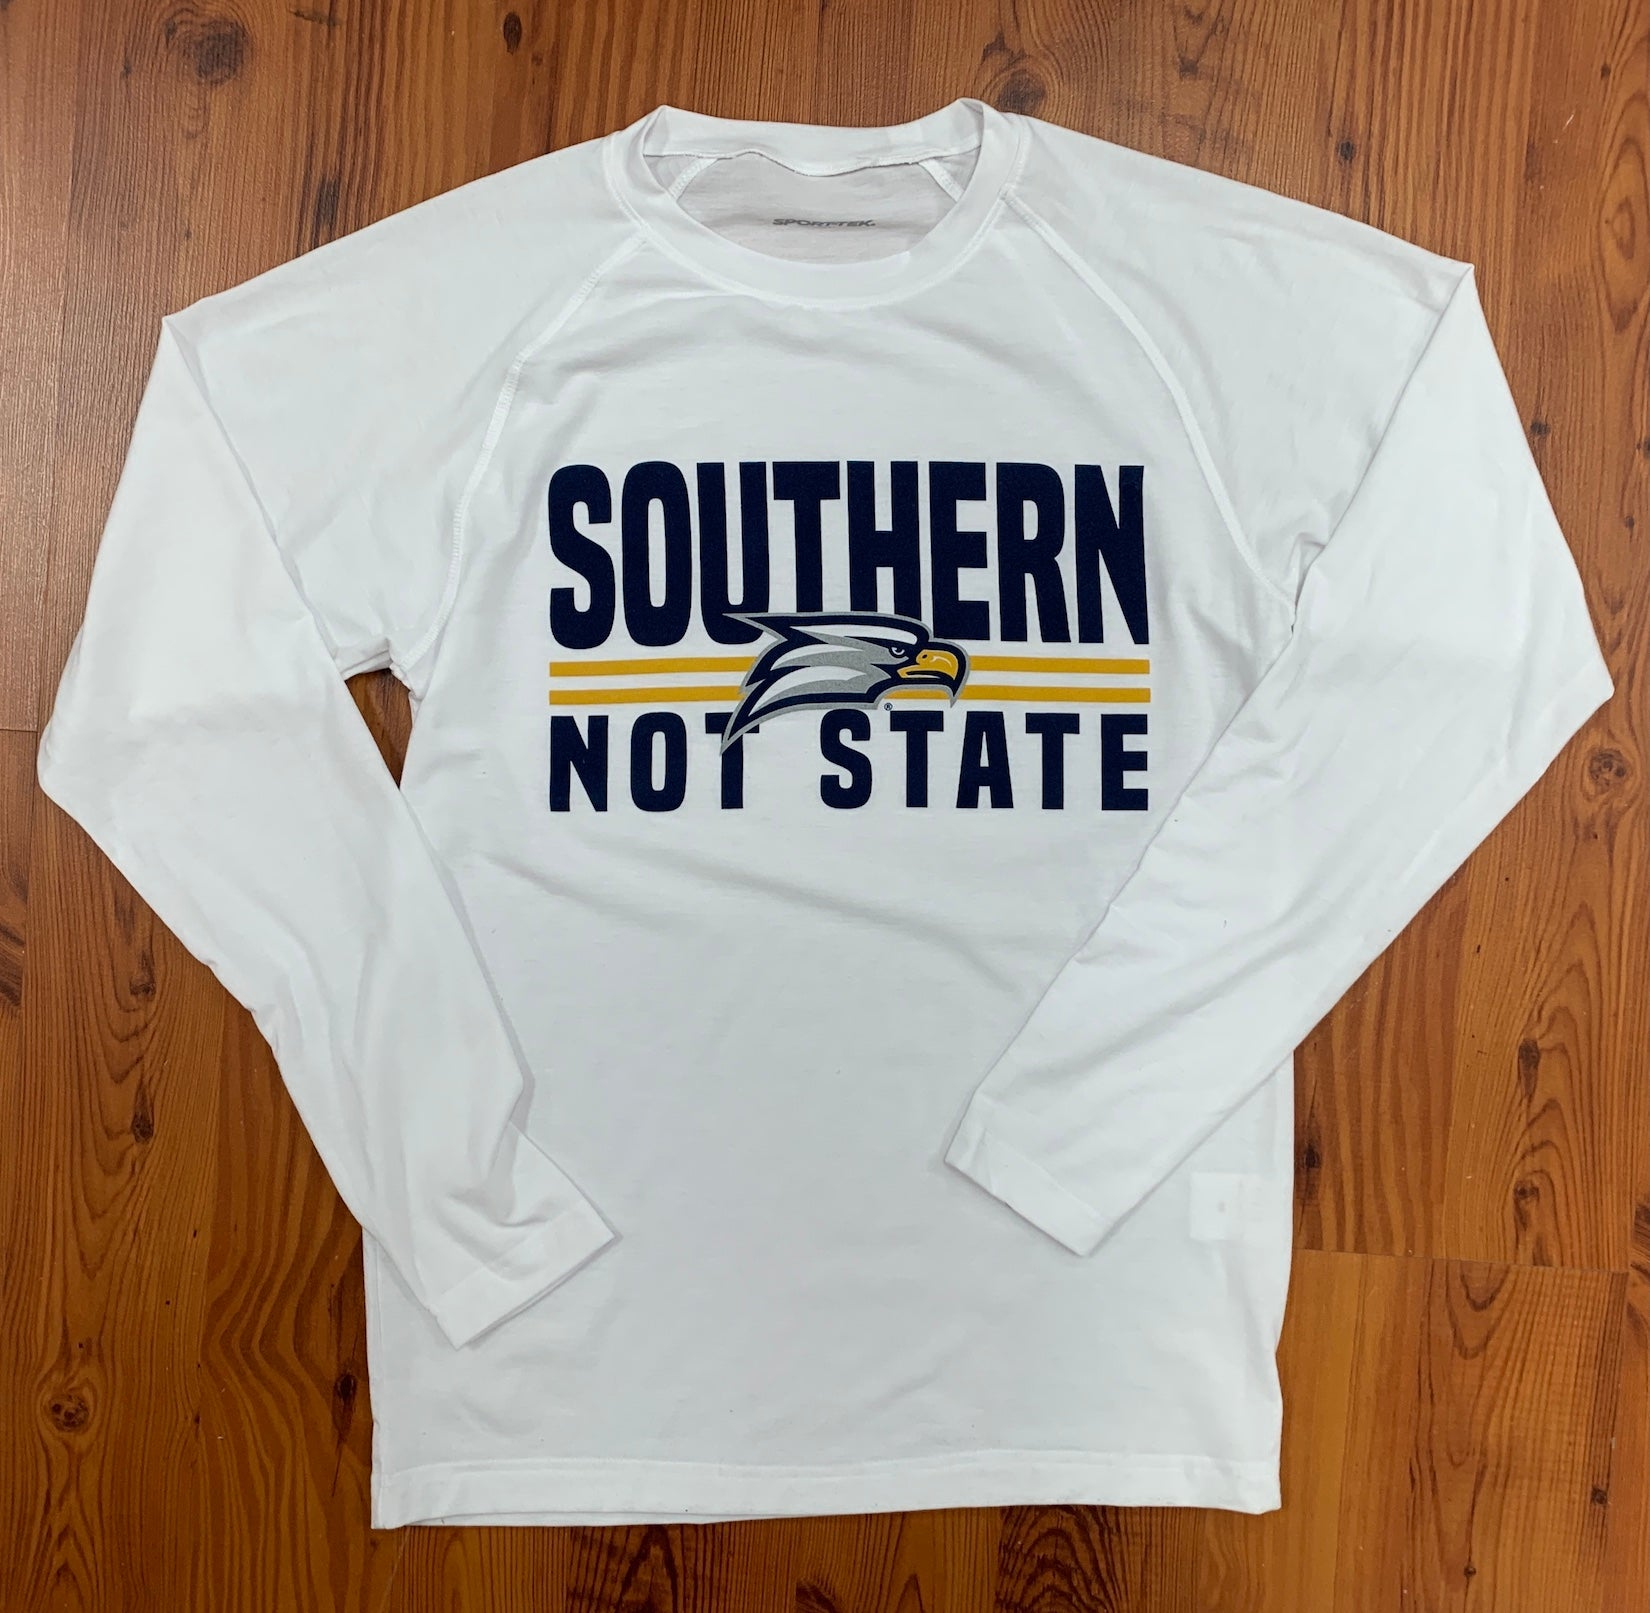 Southern Not State - Long Sleeve Performance Tee